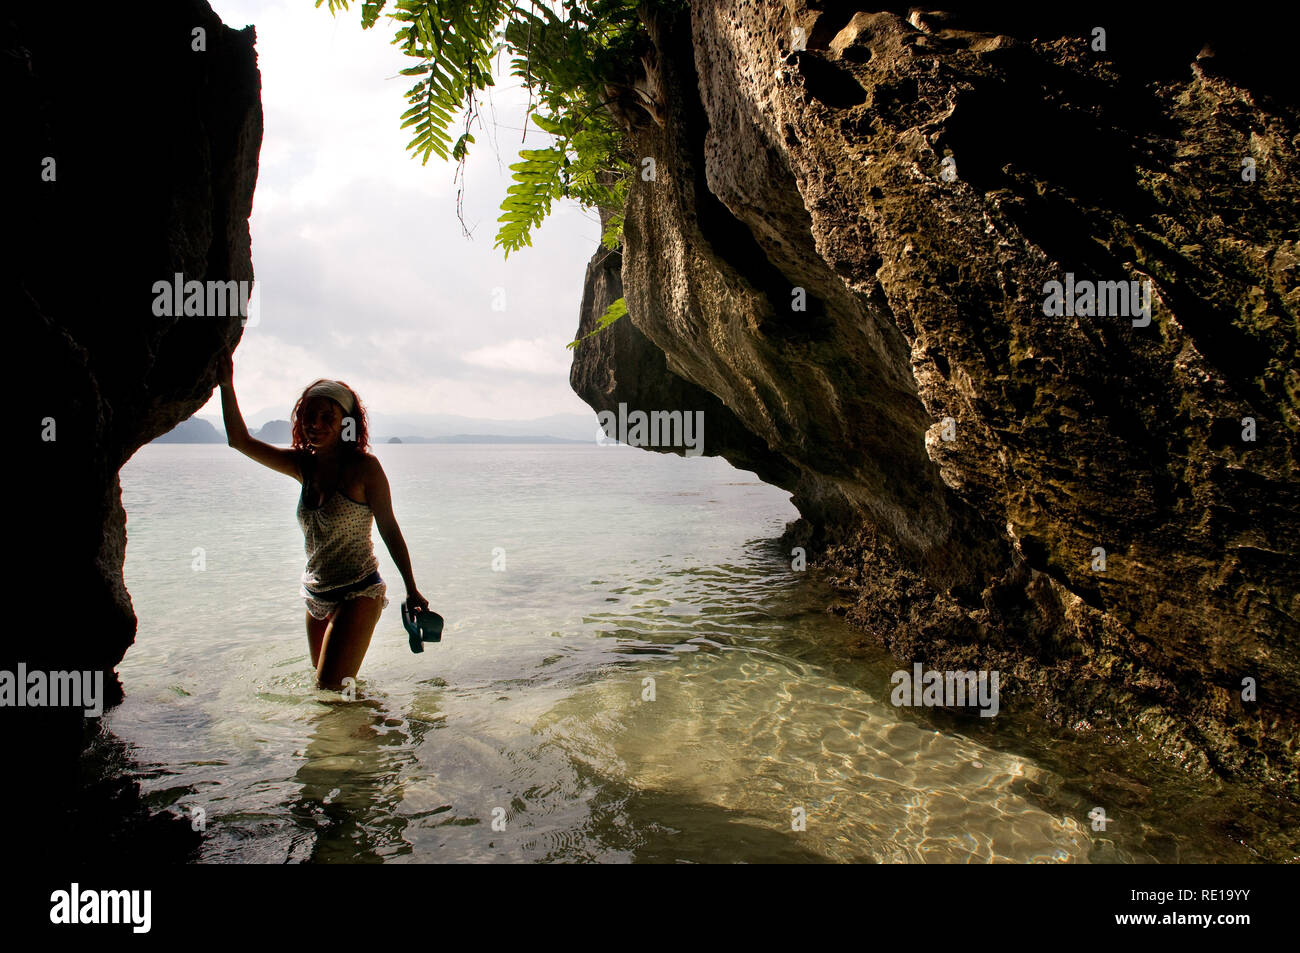 A Tourist In Cudugman Cave Bacuit Archipelago Palawan El